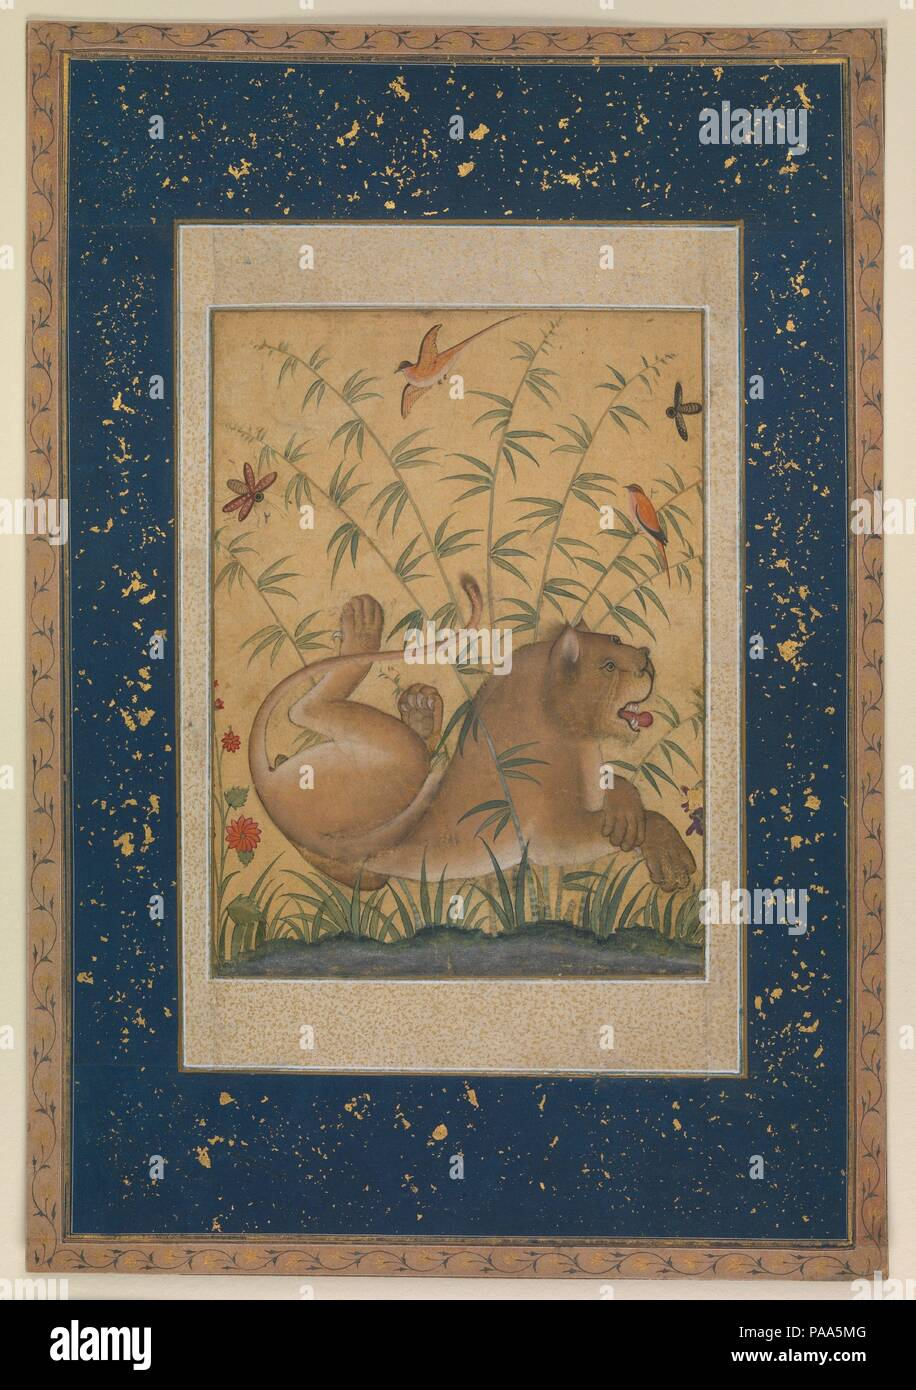 Lion in Ruhe. Abmessungen: Malerei: 8 x 6 in. (20,3 x 15,2 cm) Folio ...